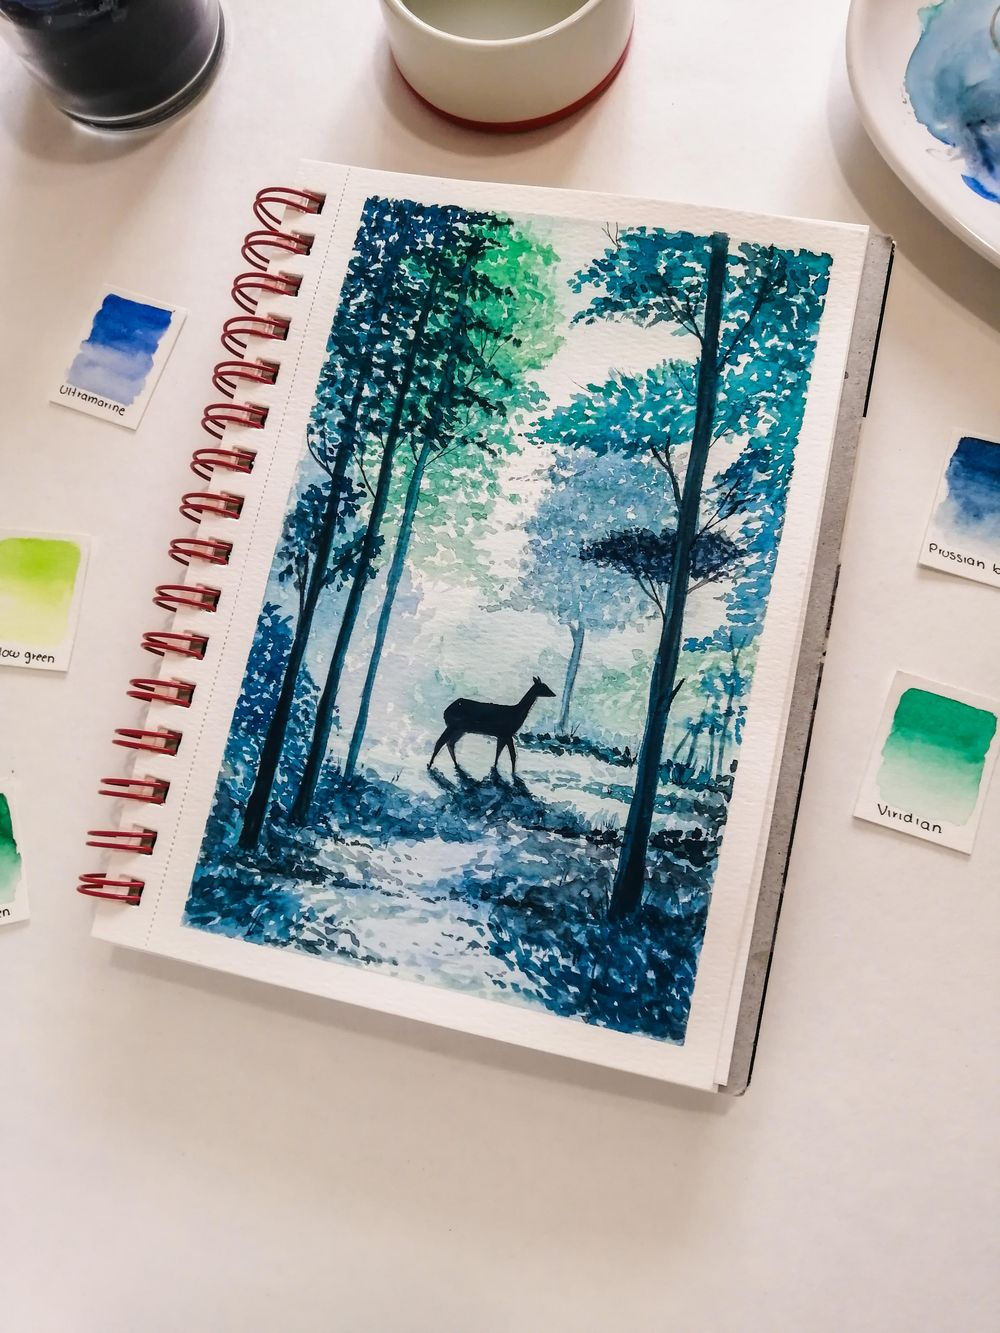 forest trees and deer - image 2 - student project